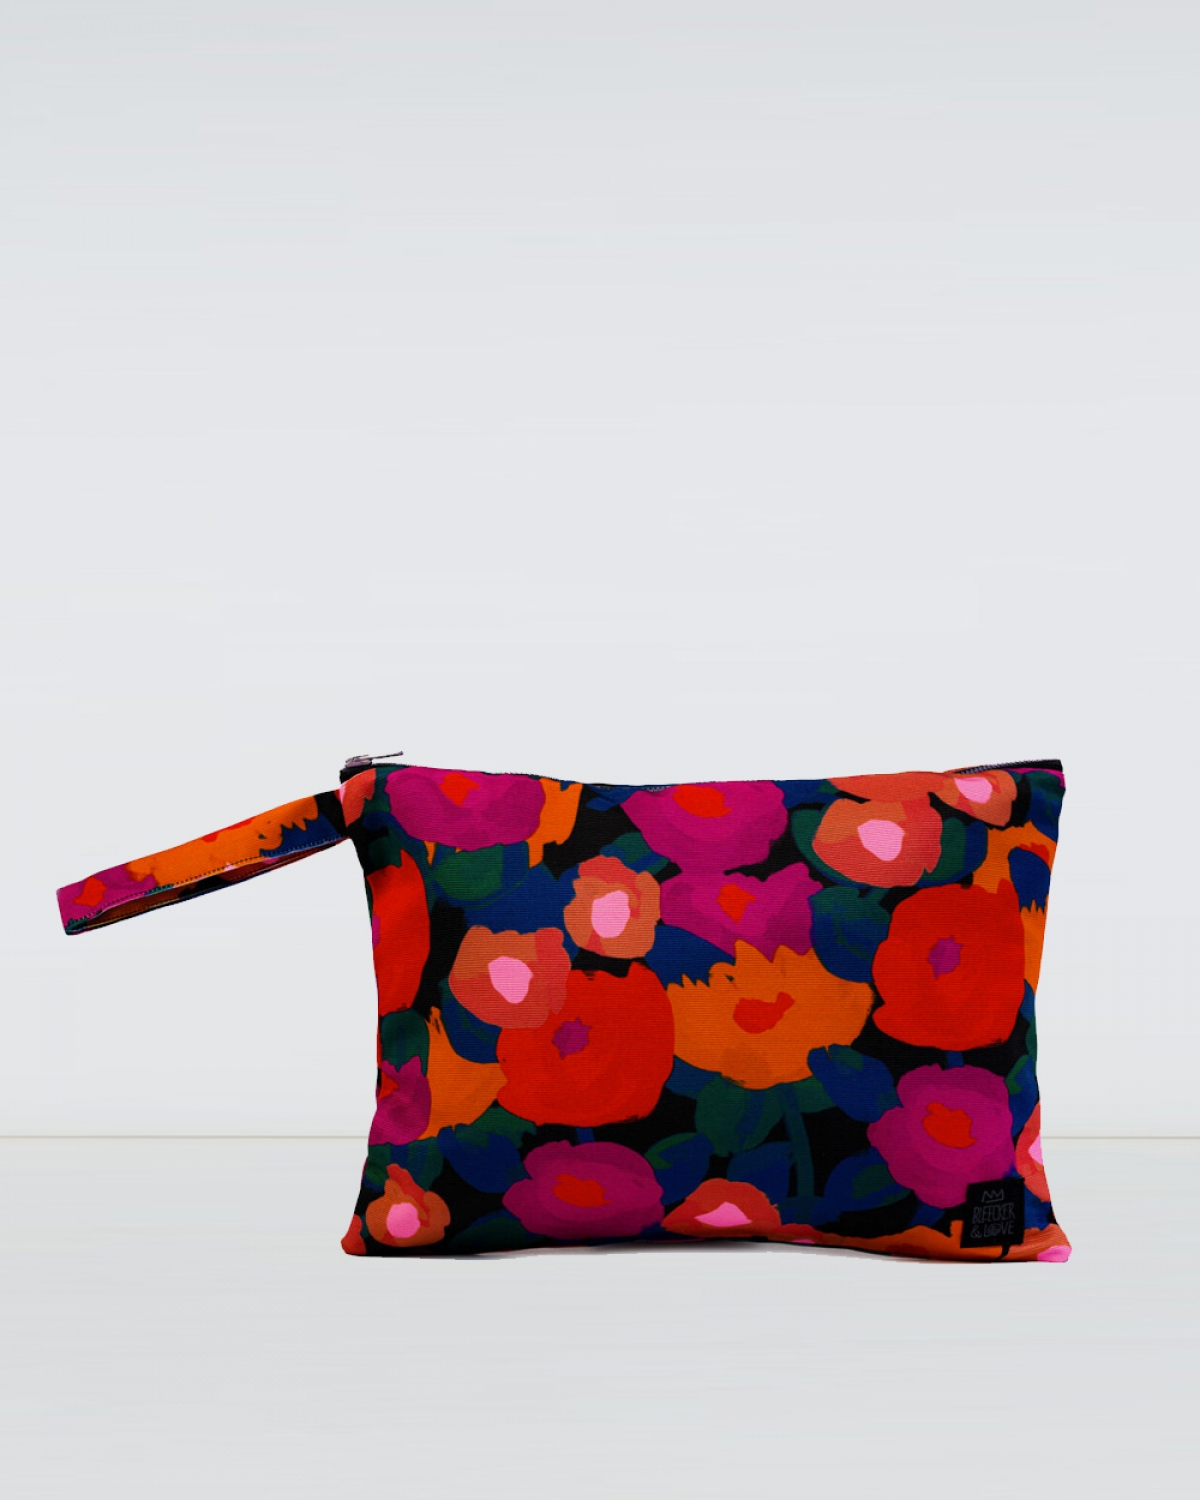 MARTINIQUE Medium Clutch